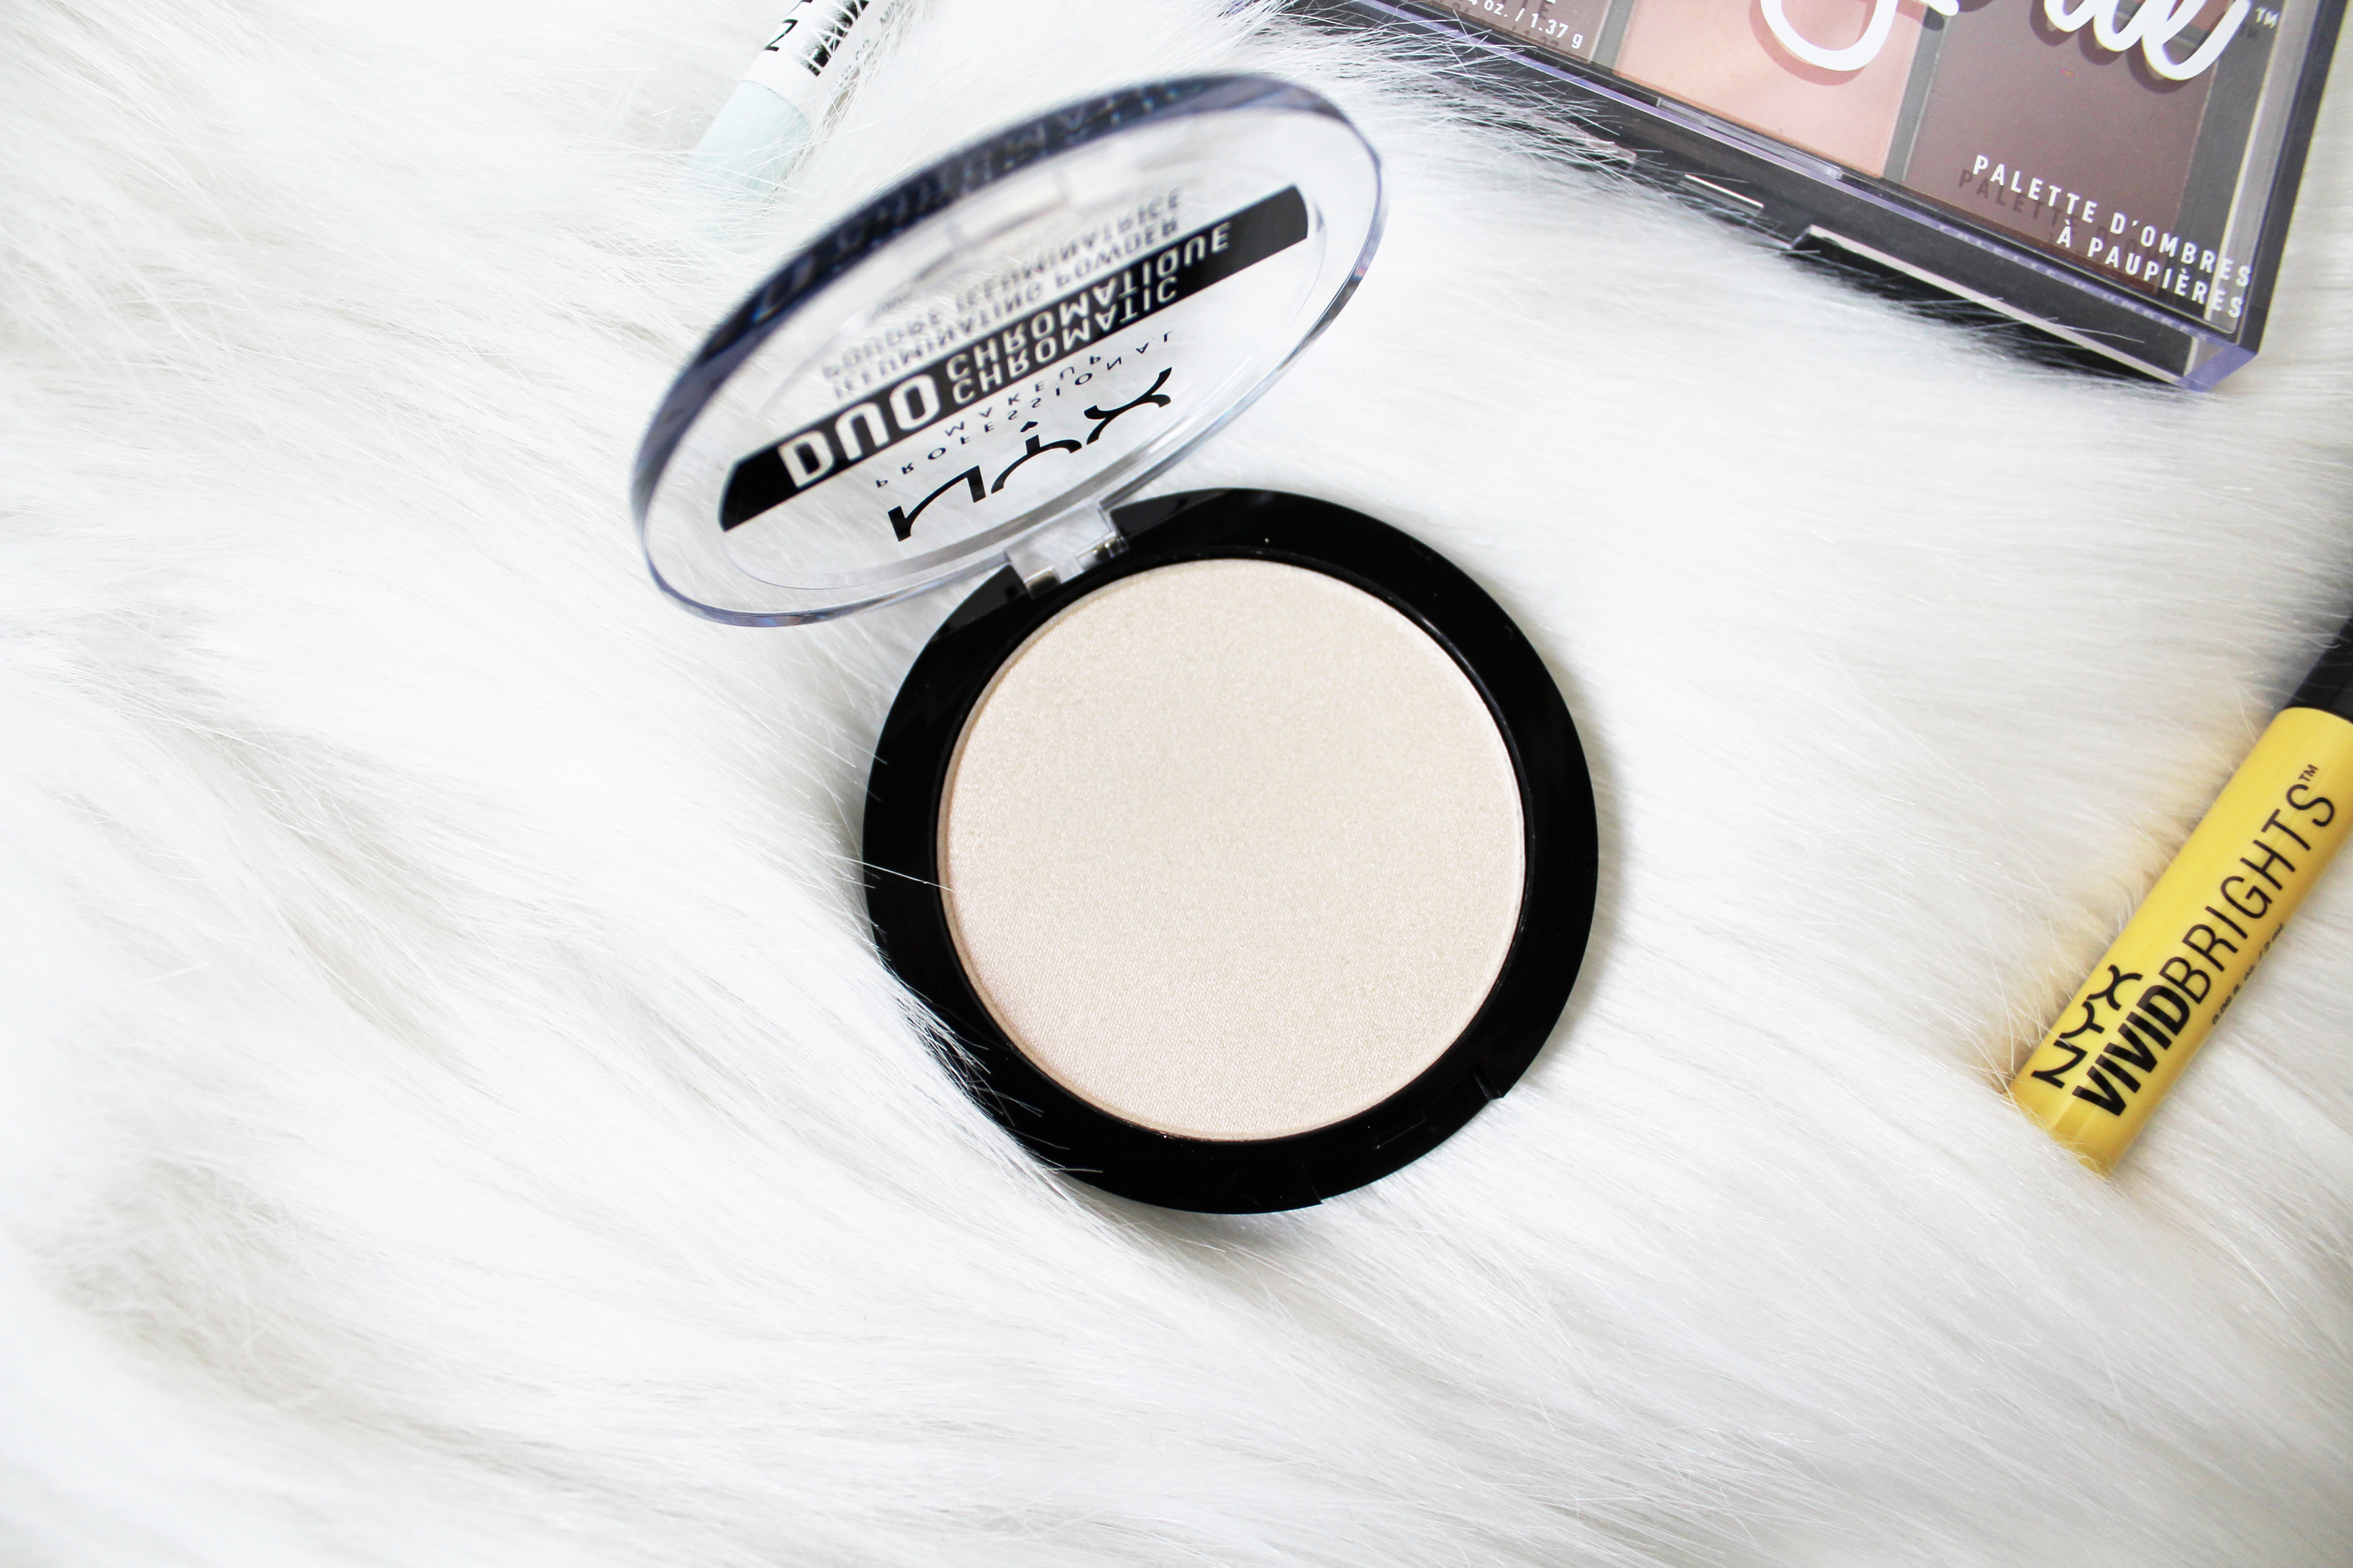 NYX Cosmetics Haul: DUO CHROMATIC ILLUMINATING POWDER Snow Rose